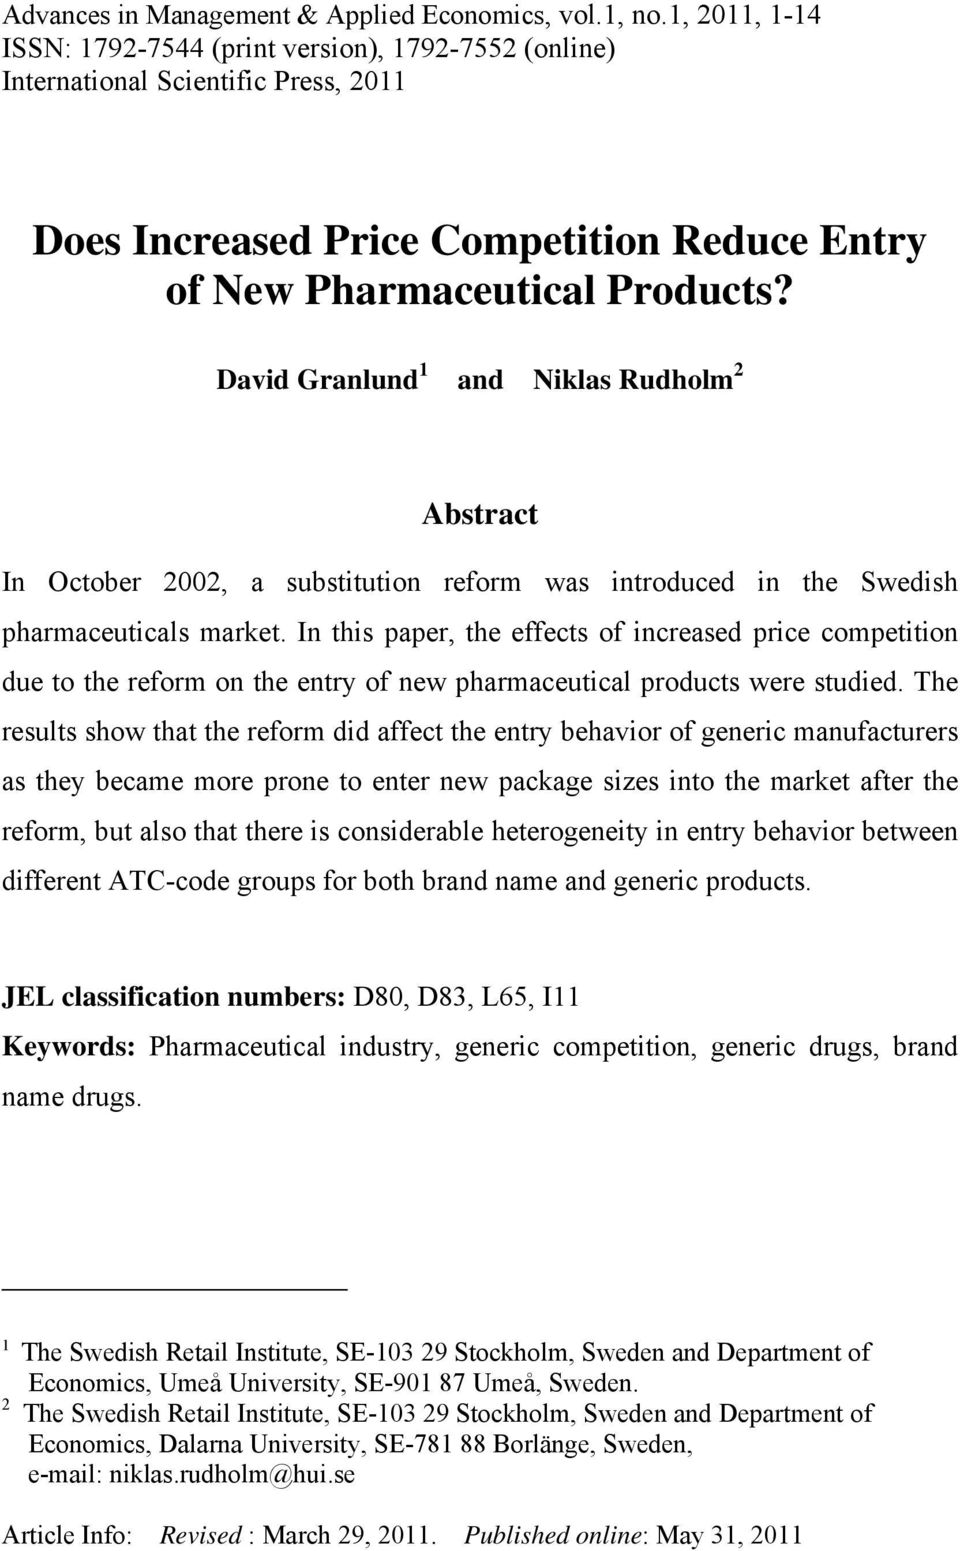 David Granlund 1 and Niklas Rudholm 2 Abstract In October 2002, a substitution reform was introduced in the Swedish pharmaceuticals market.